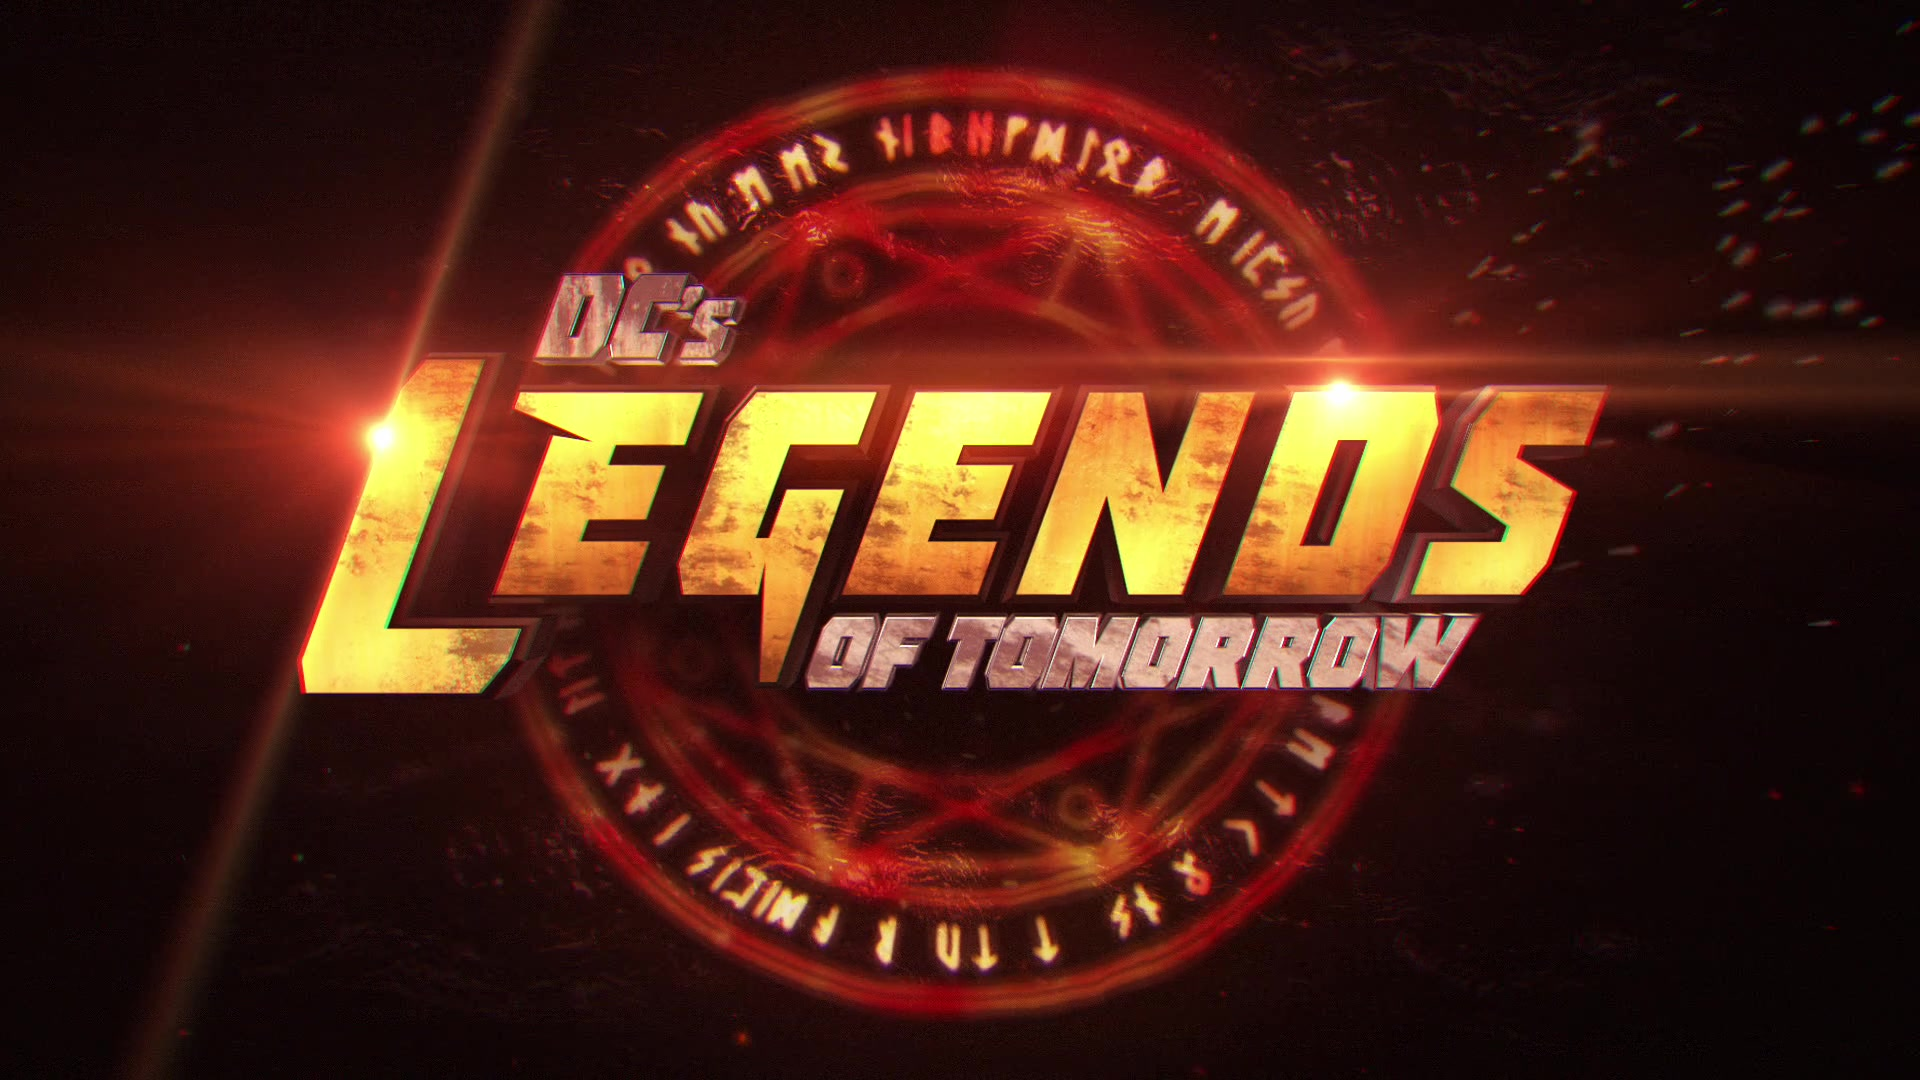 DC's Legends of Tomorrow (TV Series) Episode: The Getaway